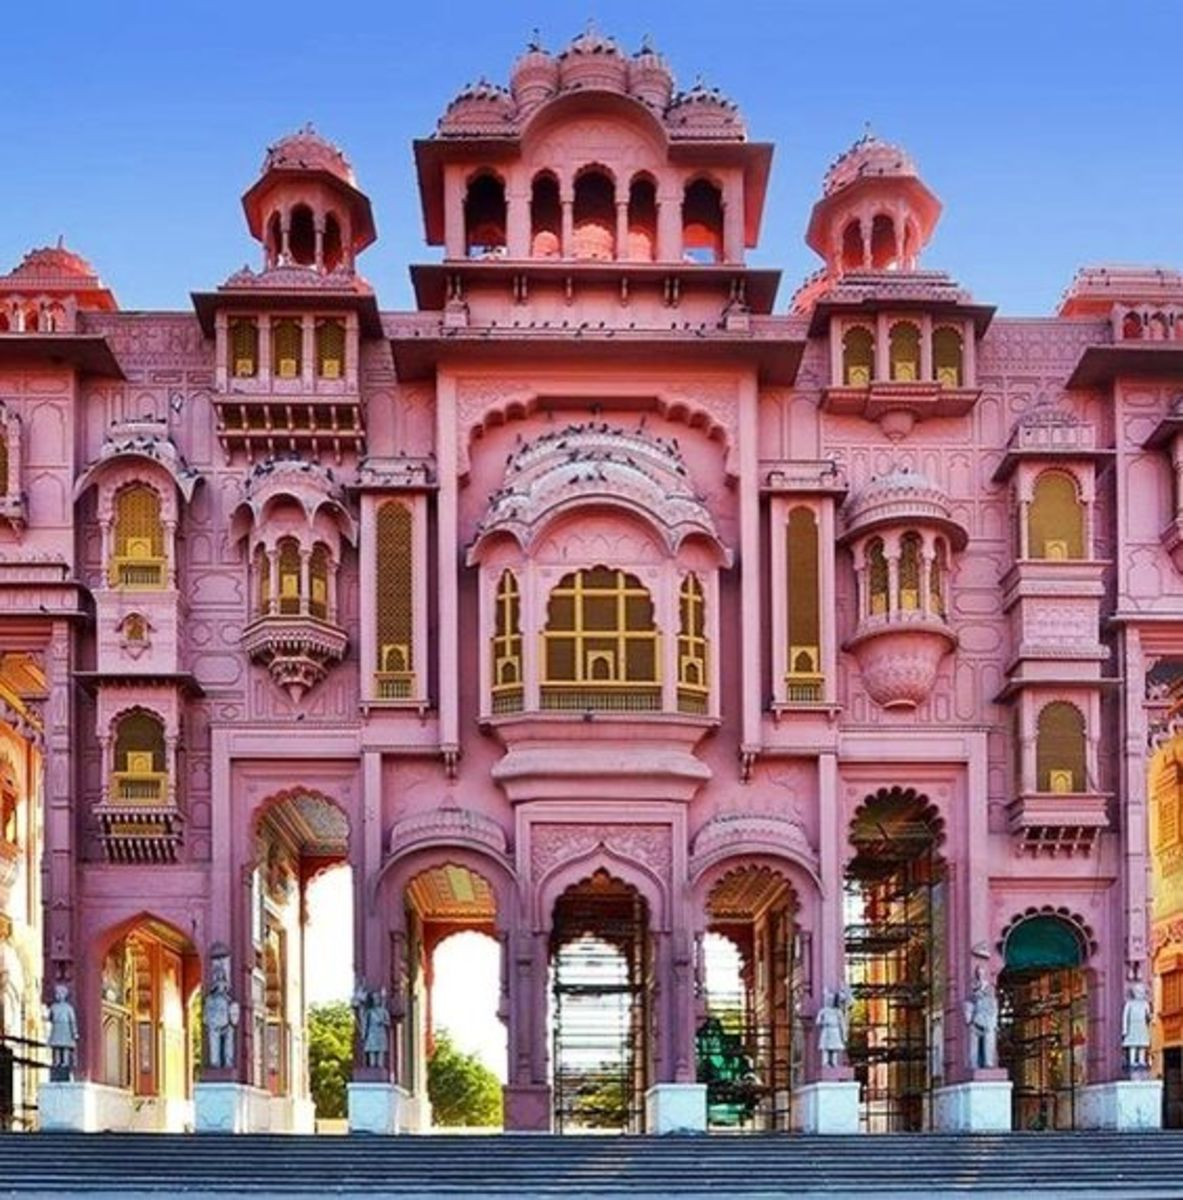 Jaipur is particularly known for its beautiful architecture.